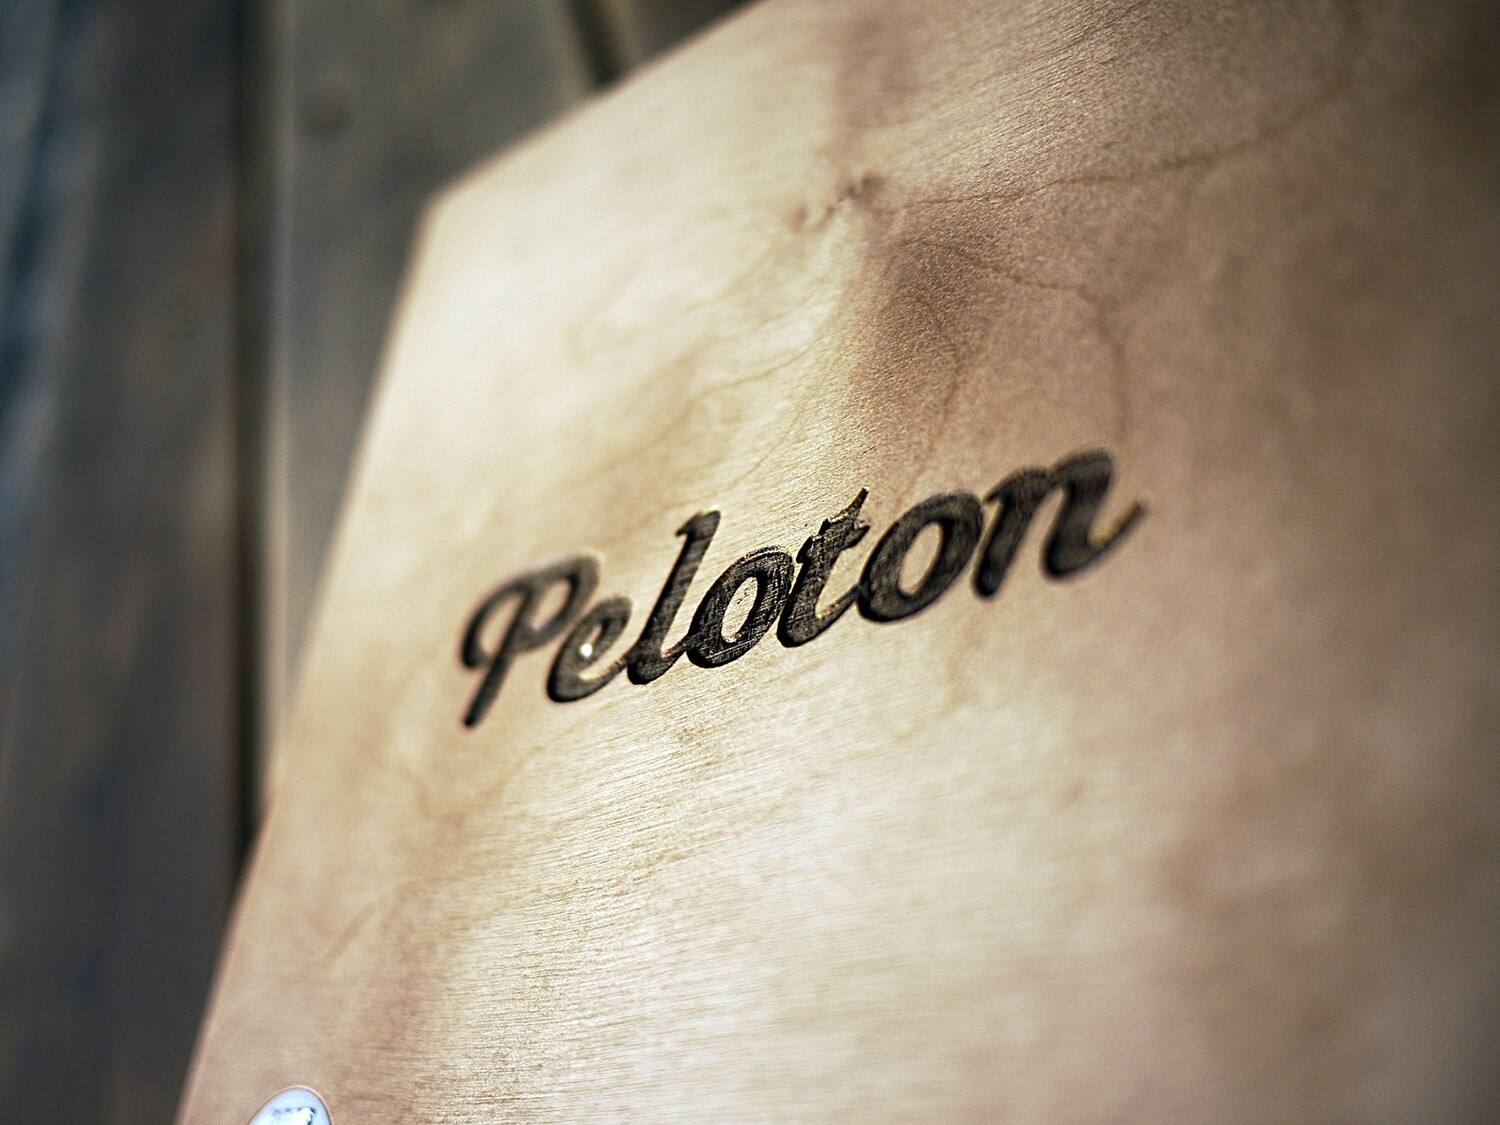 Silca x Peloton Ypsilon Custom Home Kit